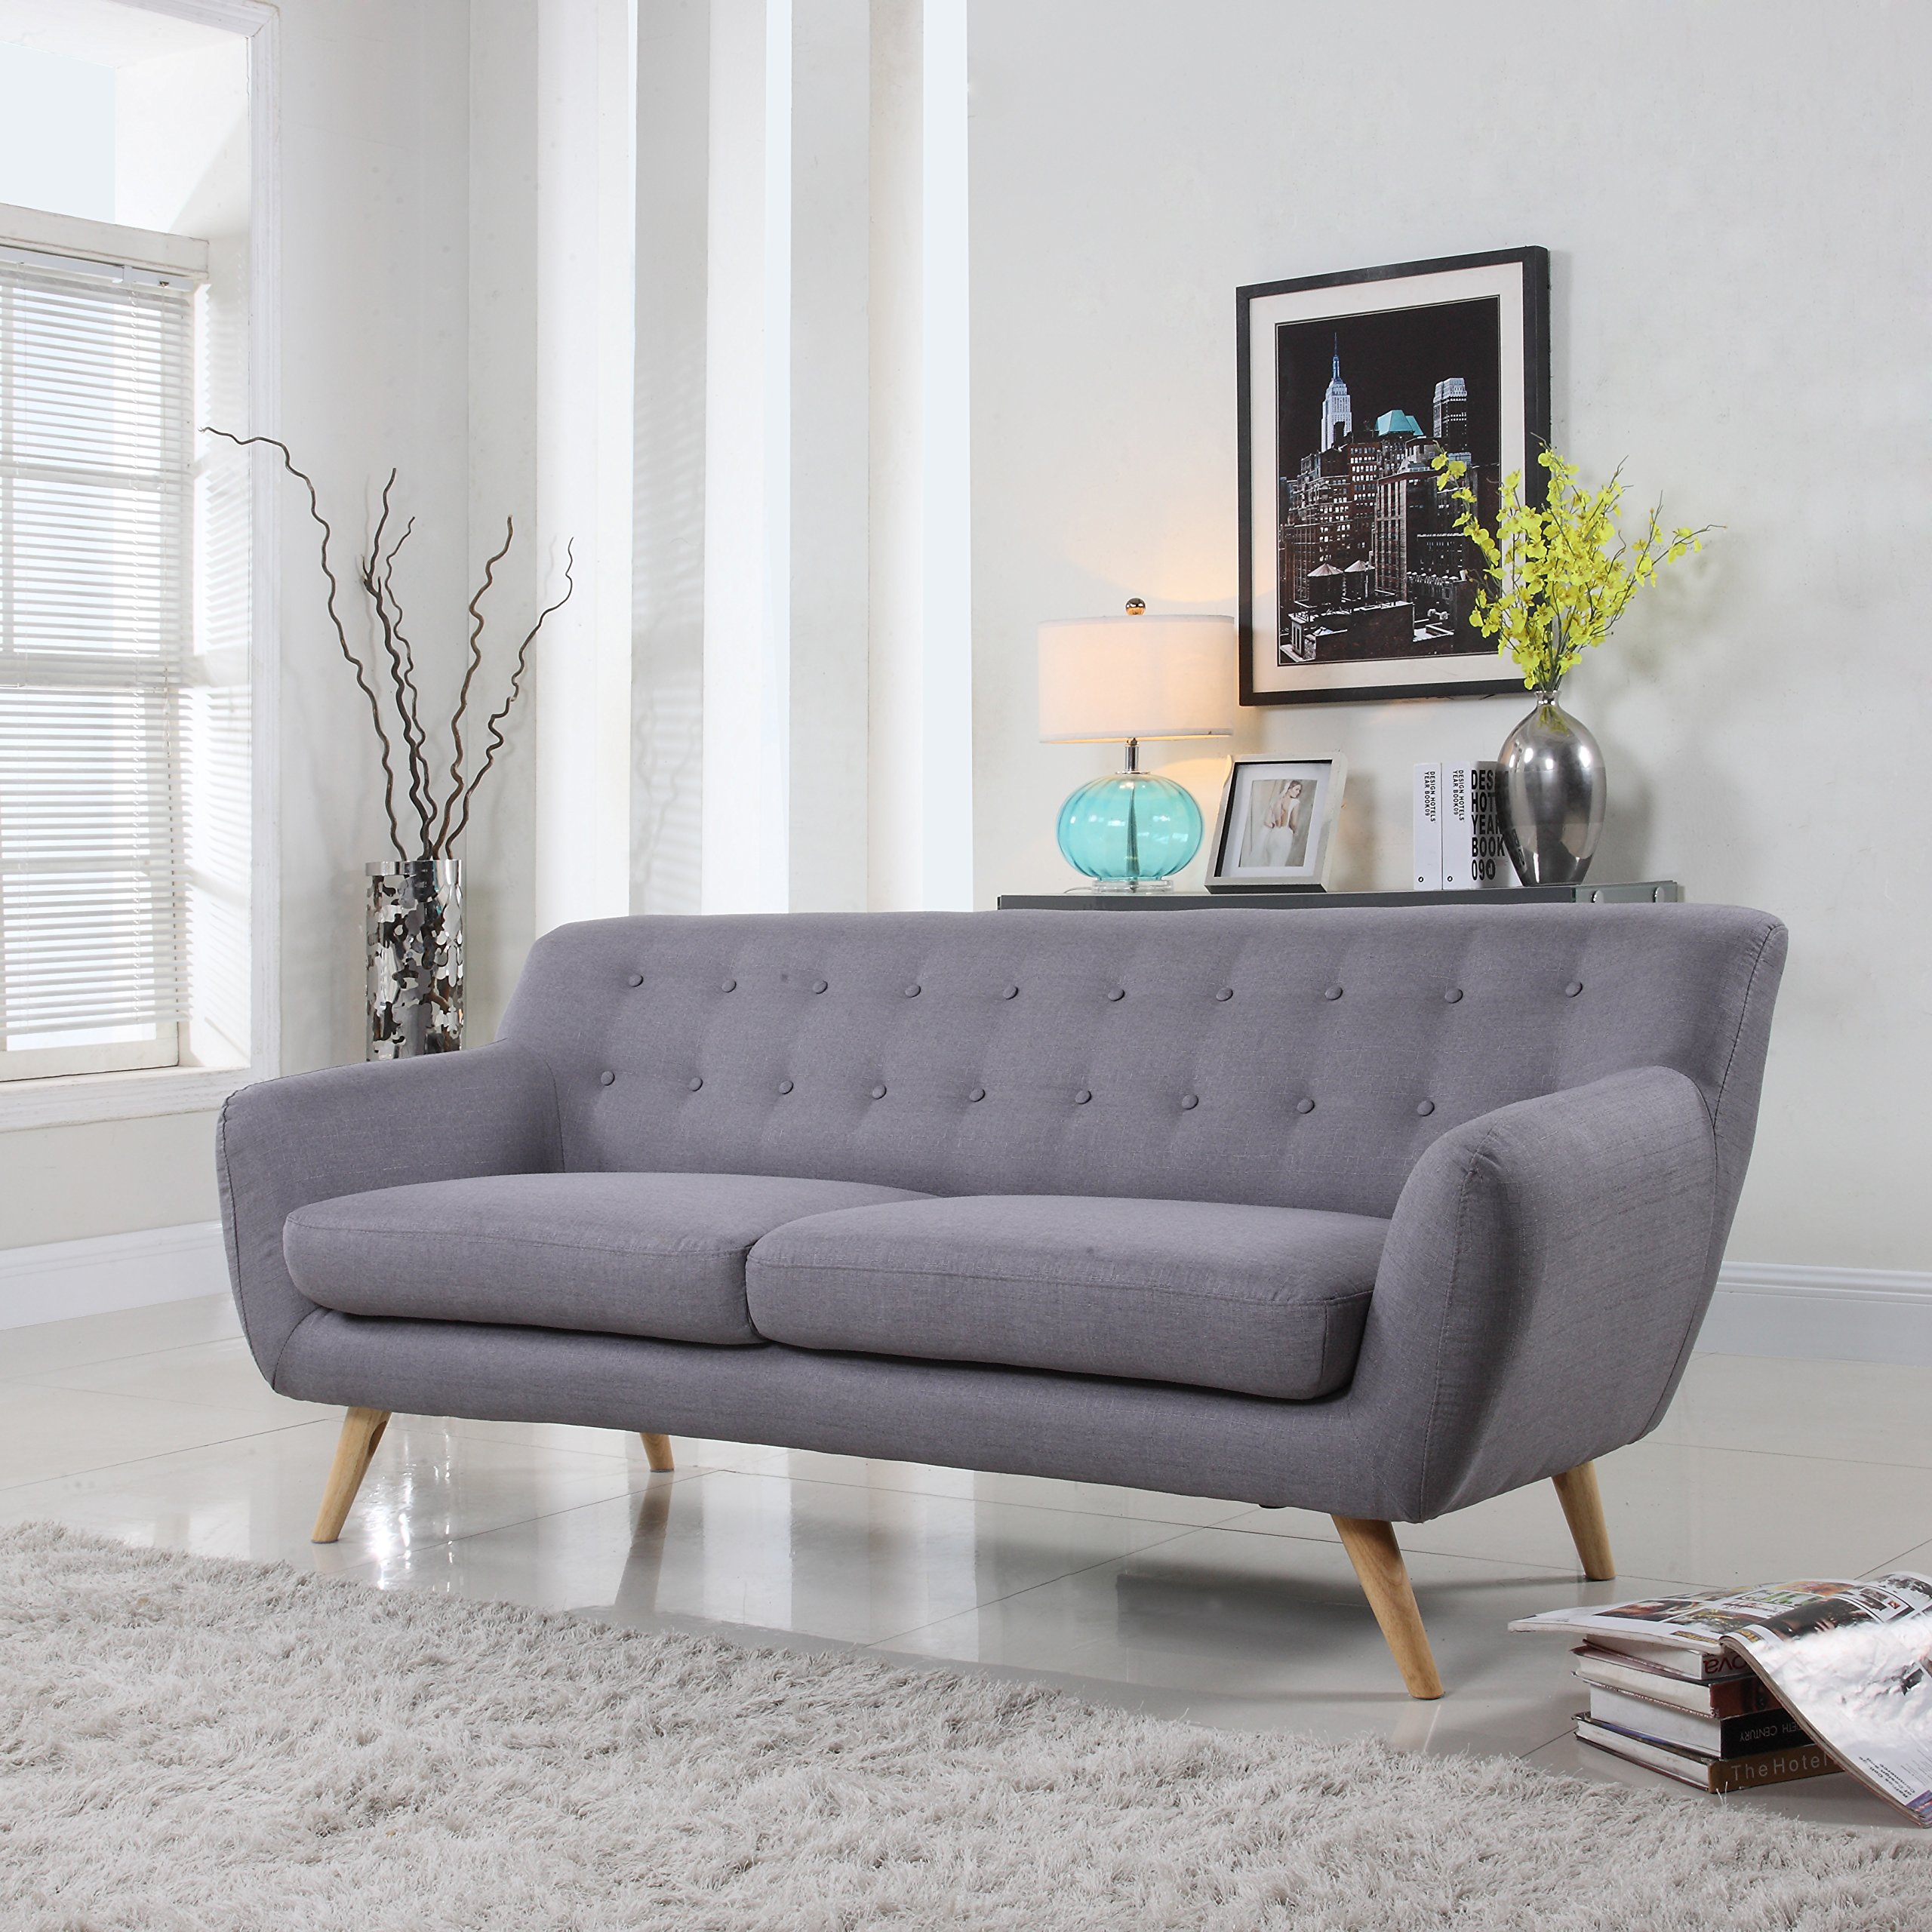 Modern Gray And White Bedroom: Mid-Century Modern Linen Fabric Sofa, Loveseat In Colors